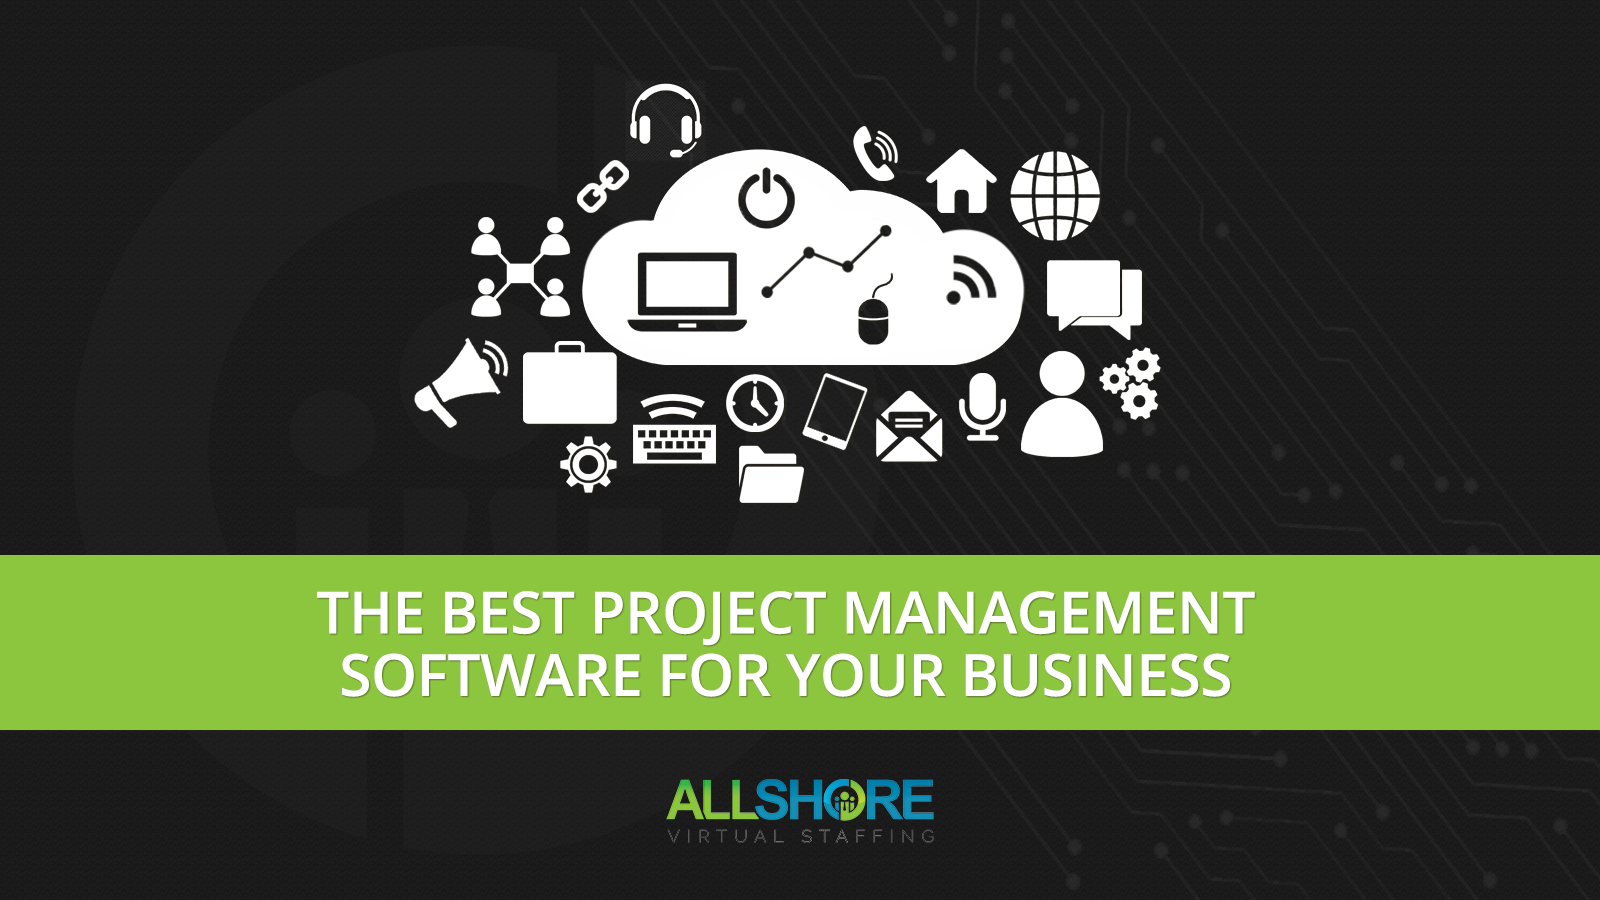 The Best Project Management Software For Your Business